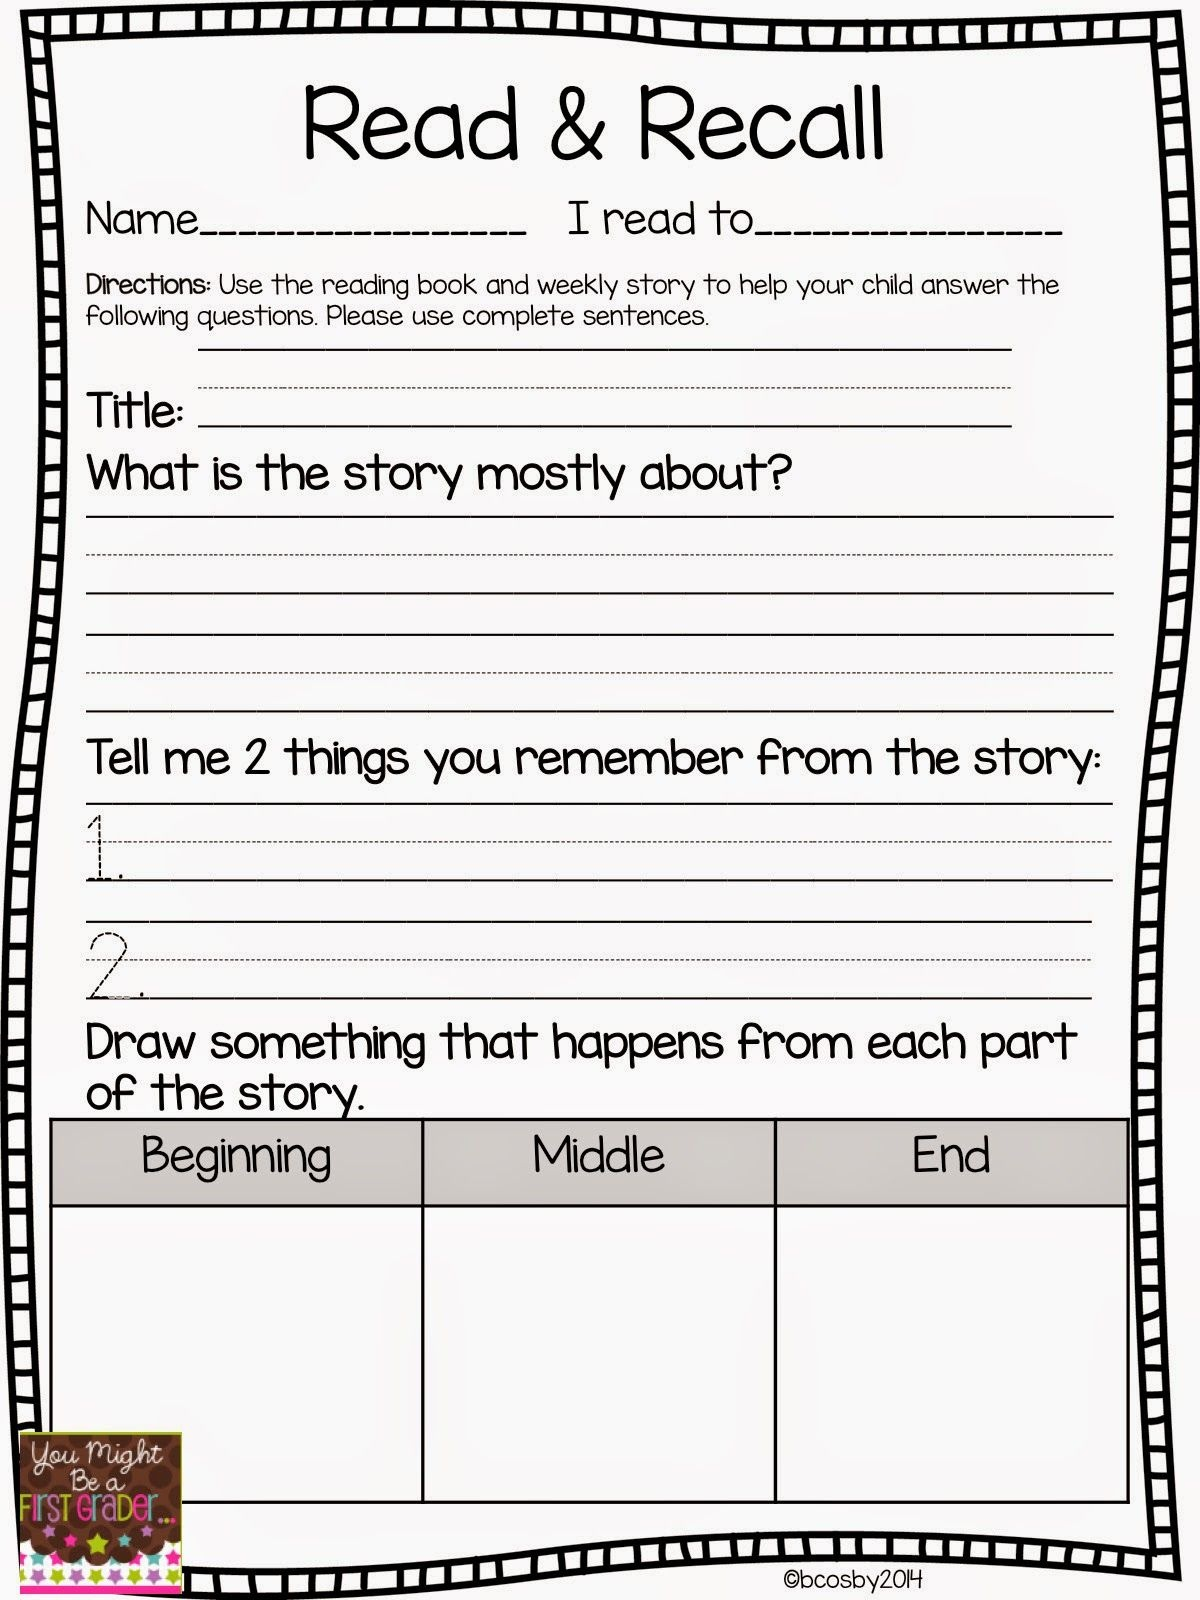 Reading Comprehension | Reading Workshop Ideas | Lectura Guiada - Free Printable Reading Games For 2Nd Graders